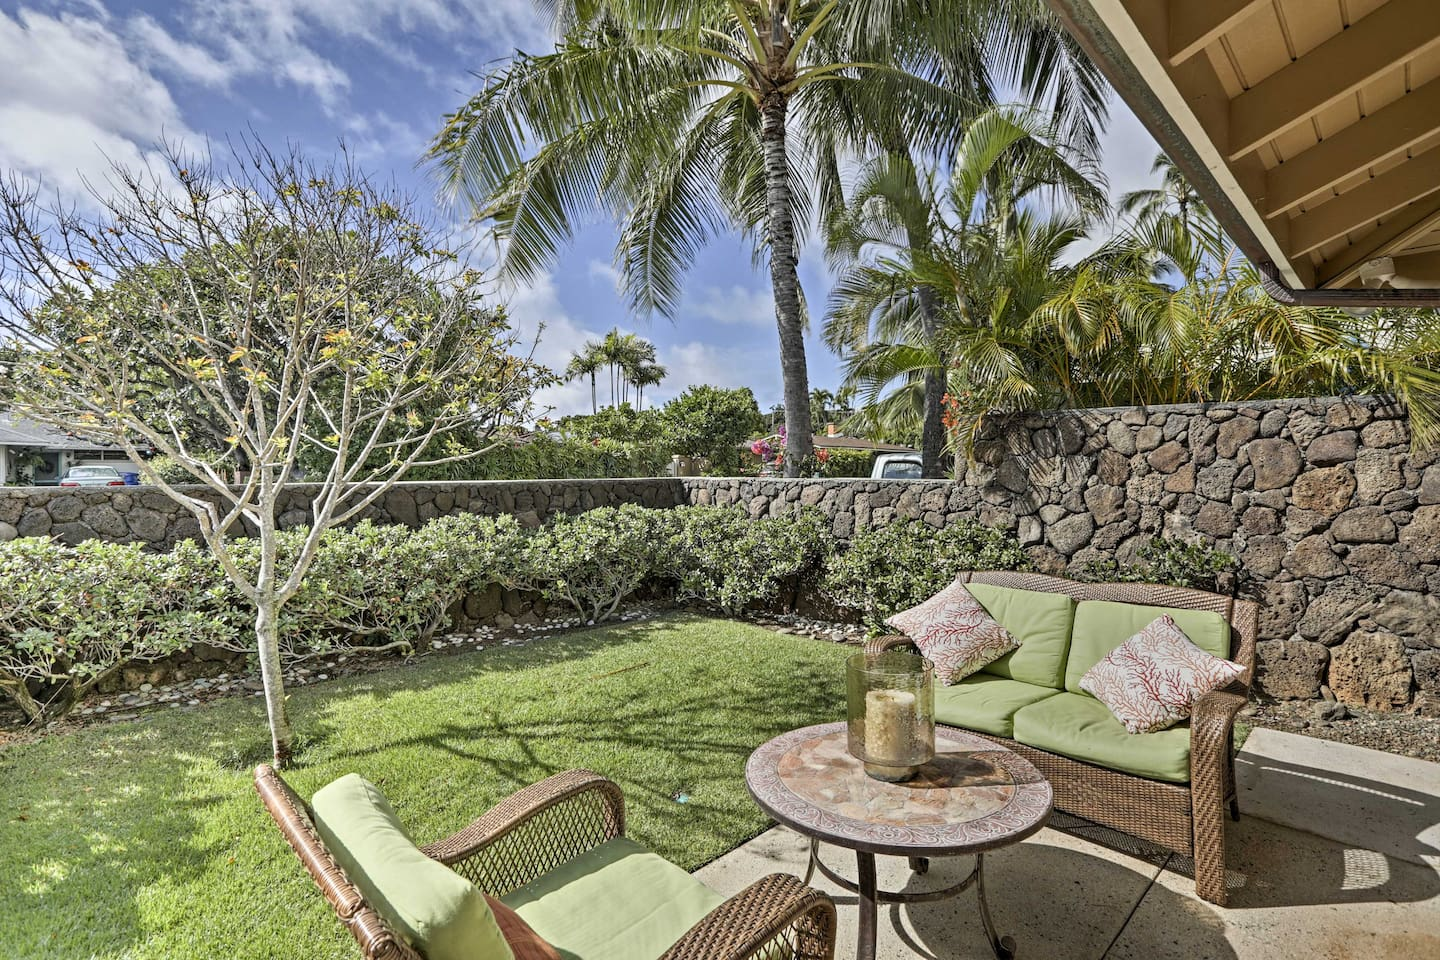 The Hawaiian Islands awaits at this 1-bathroom vacation rental studio in Honolulu!